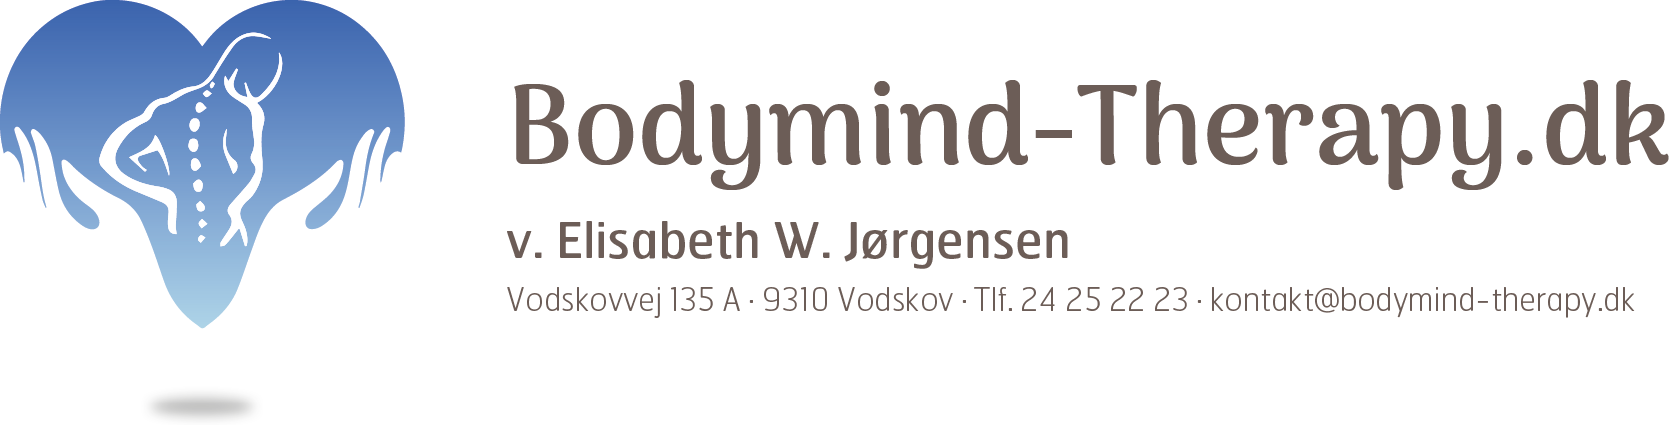 Bodymind-Therapy